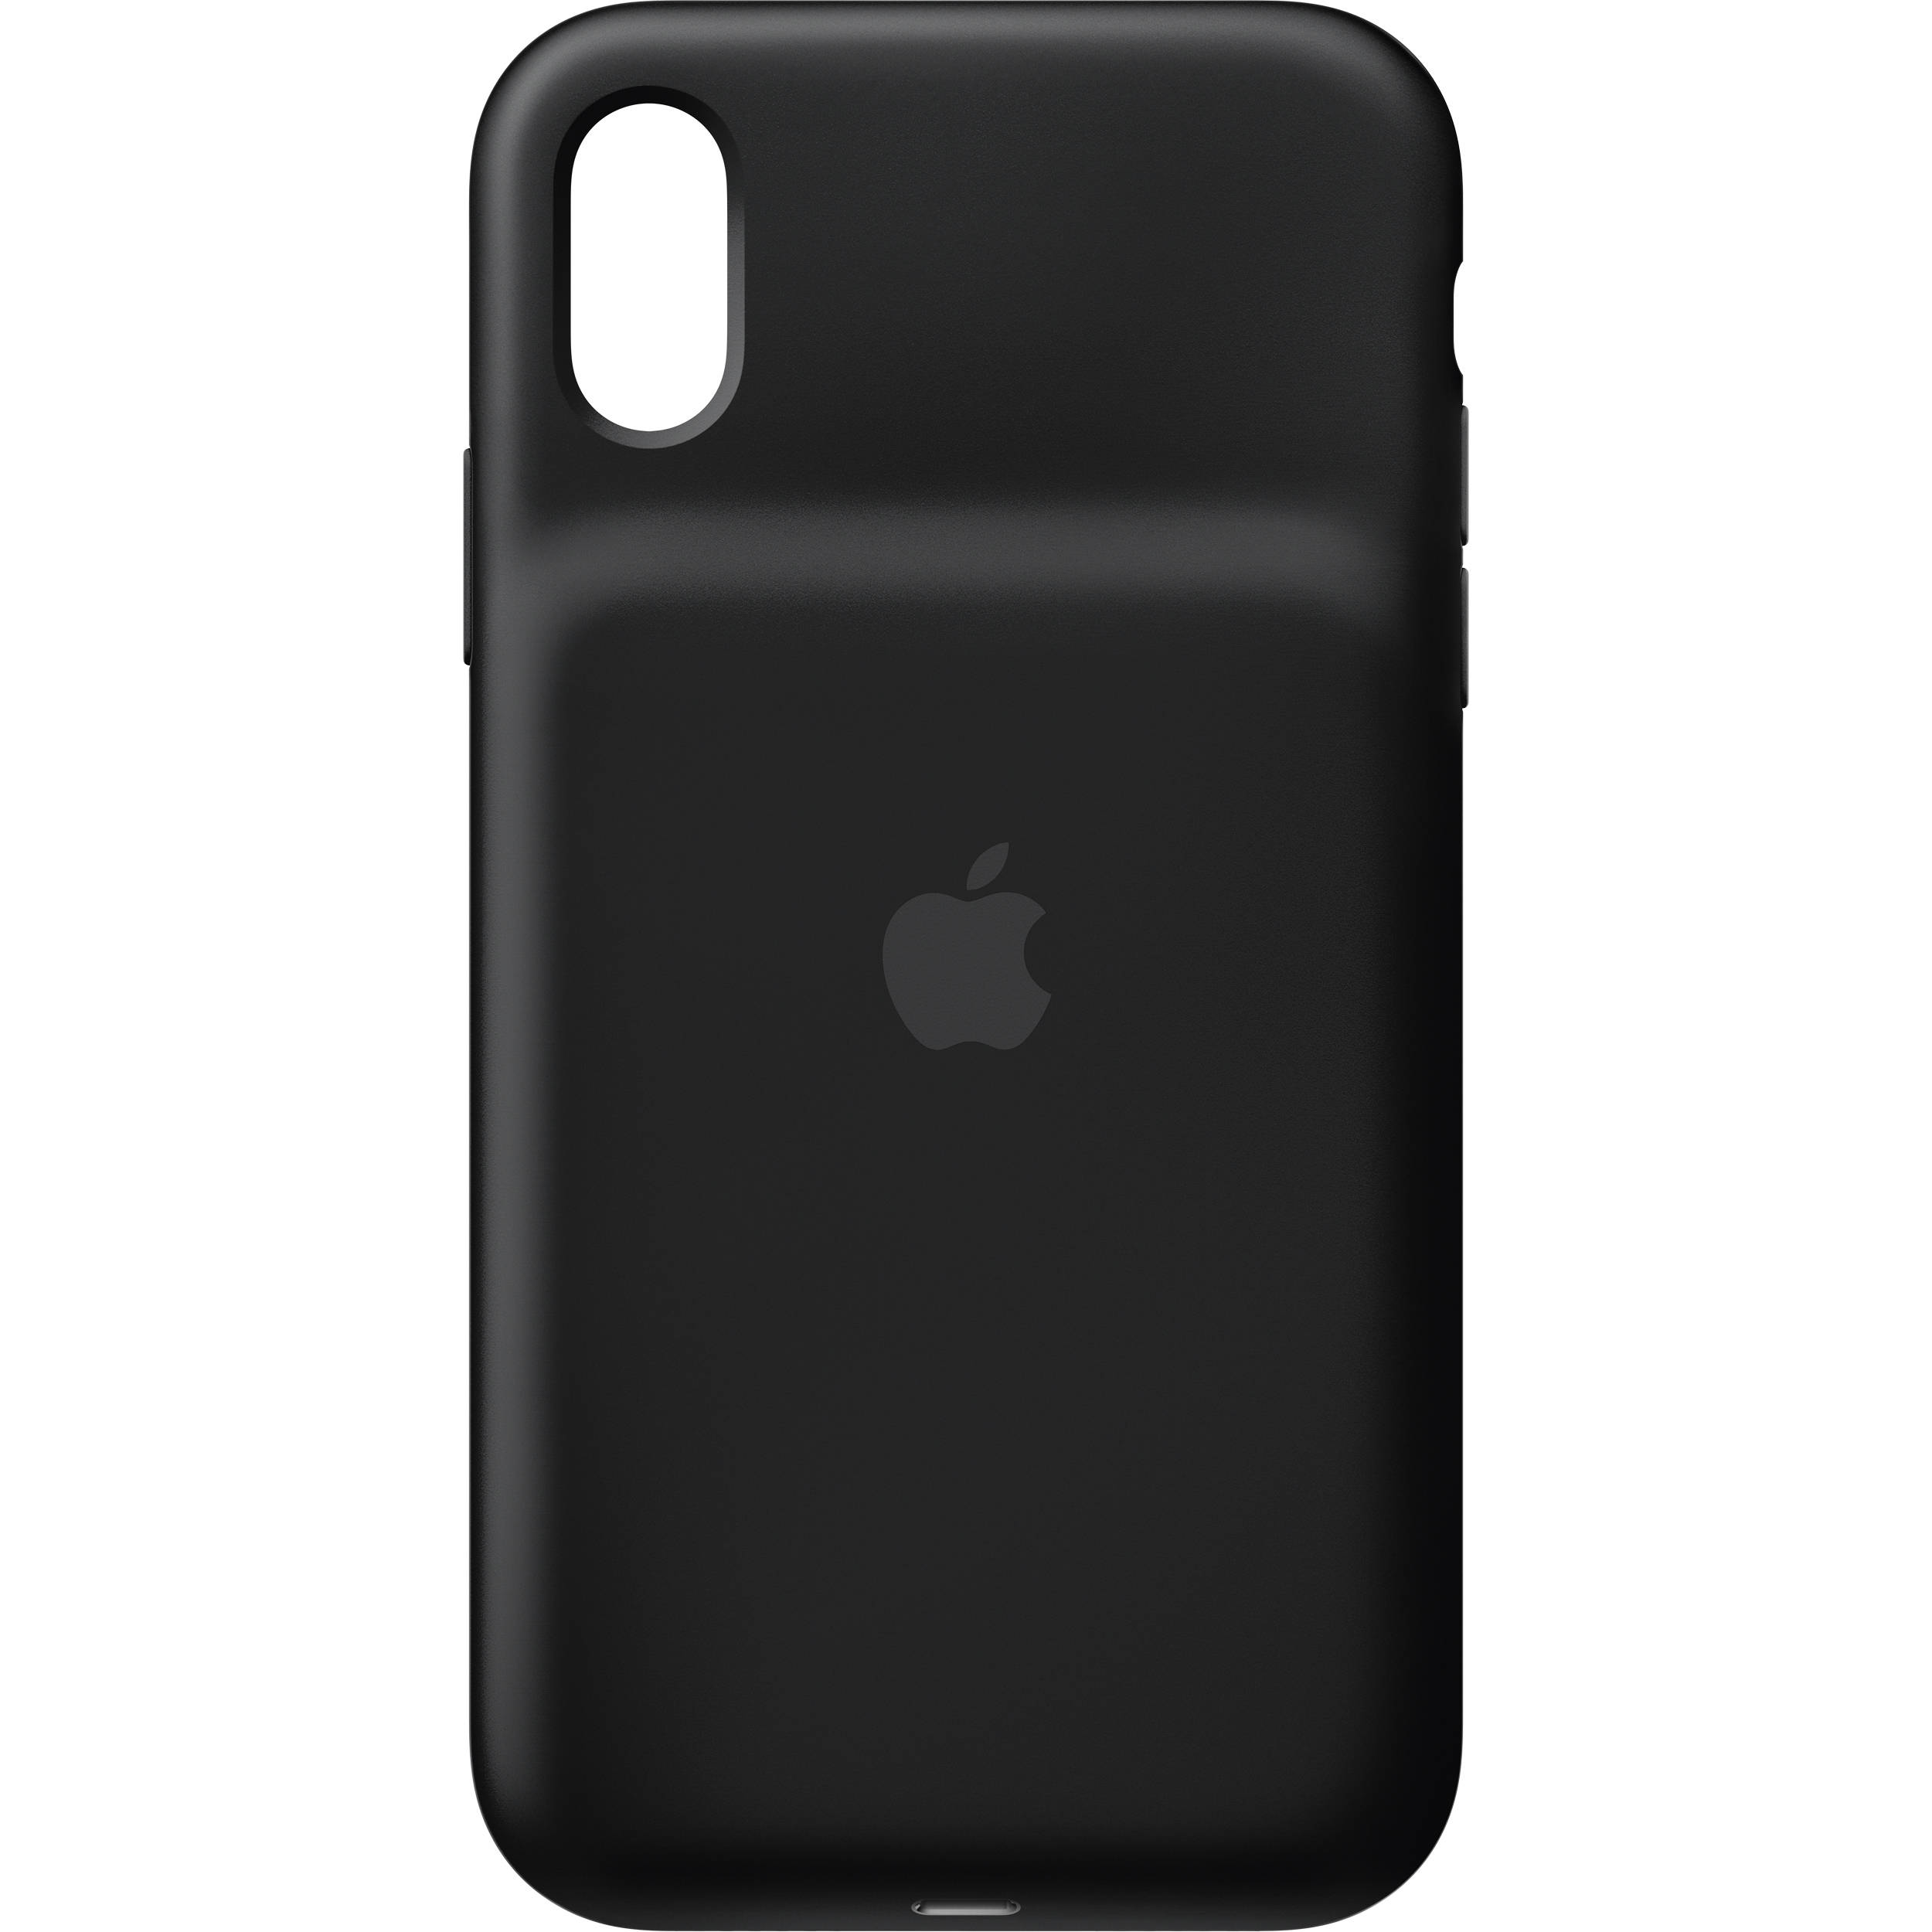 info for 53649 ca02f Apple iPhone XR Smart Battery Case (Black)